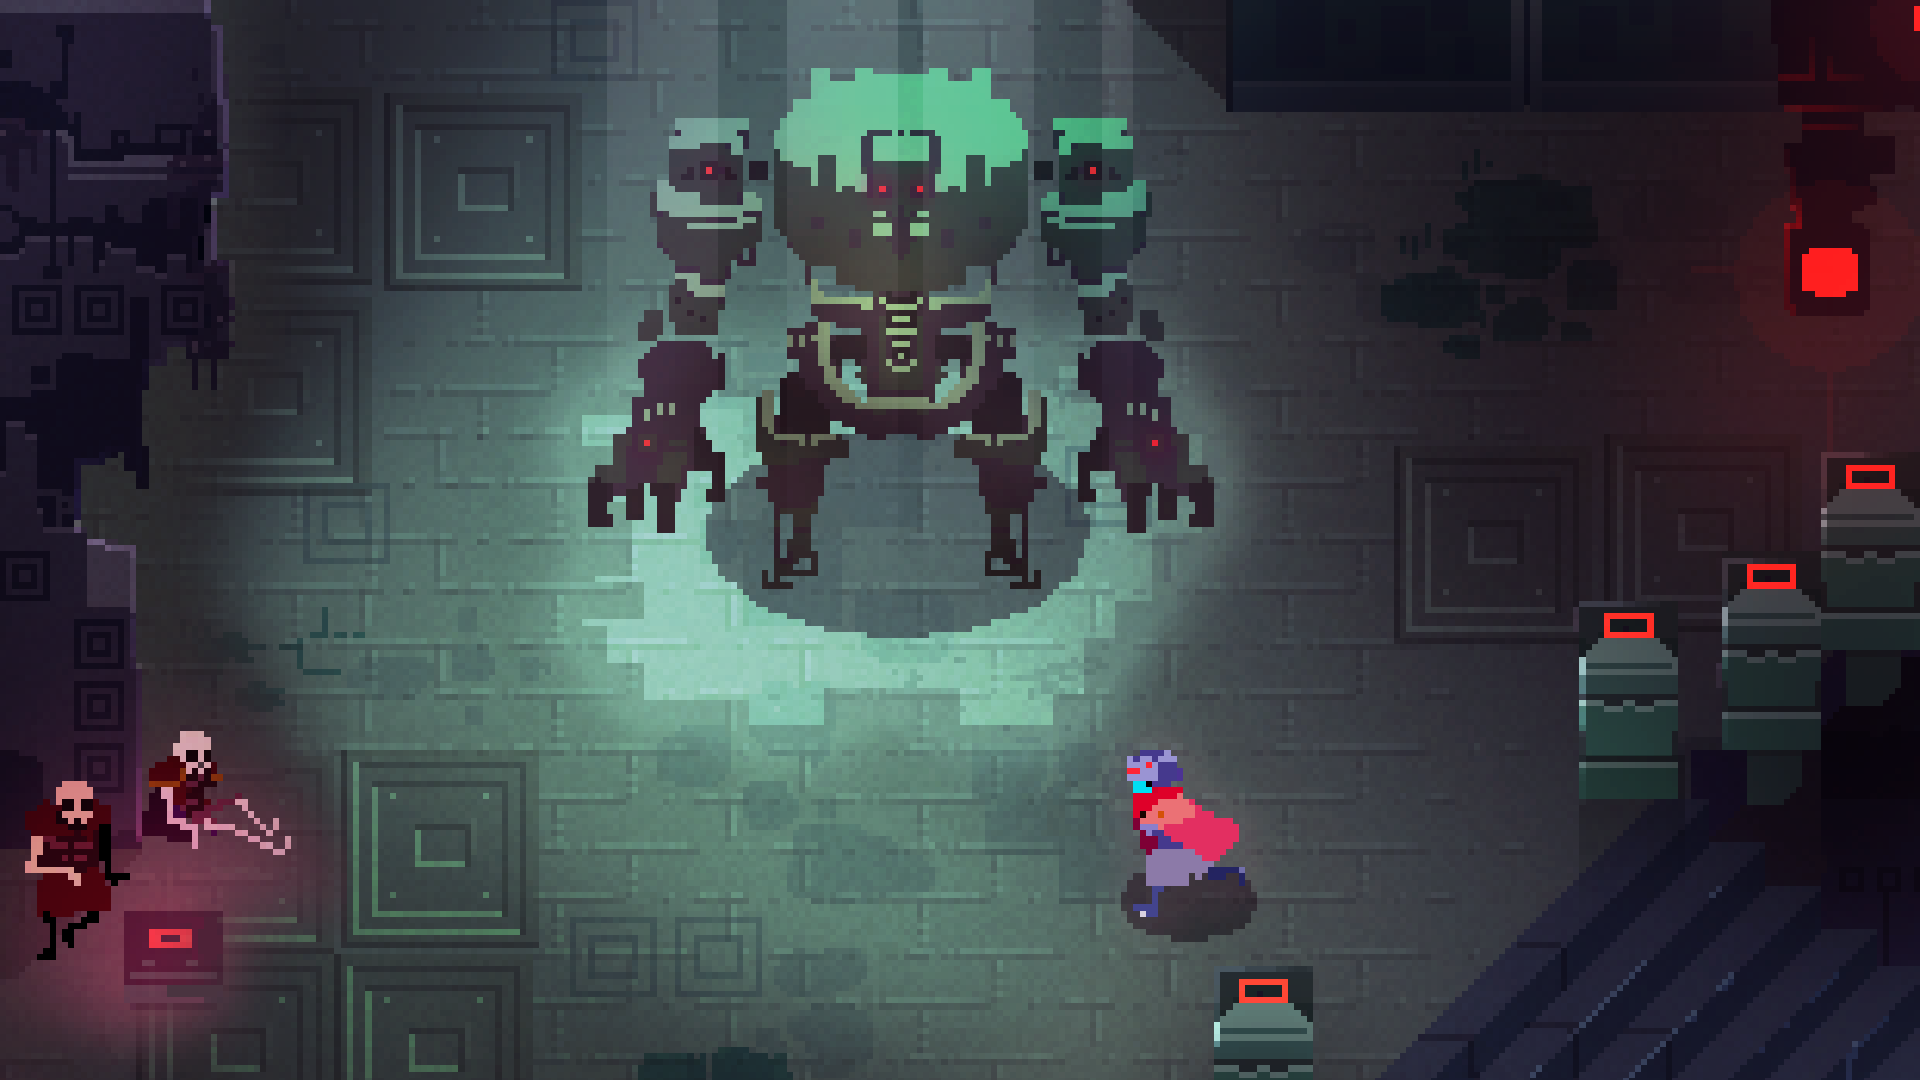 Hyper Light Drifter Video Game Wallpaper 61521 1920x1080px 1920x1080